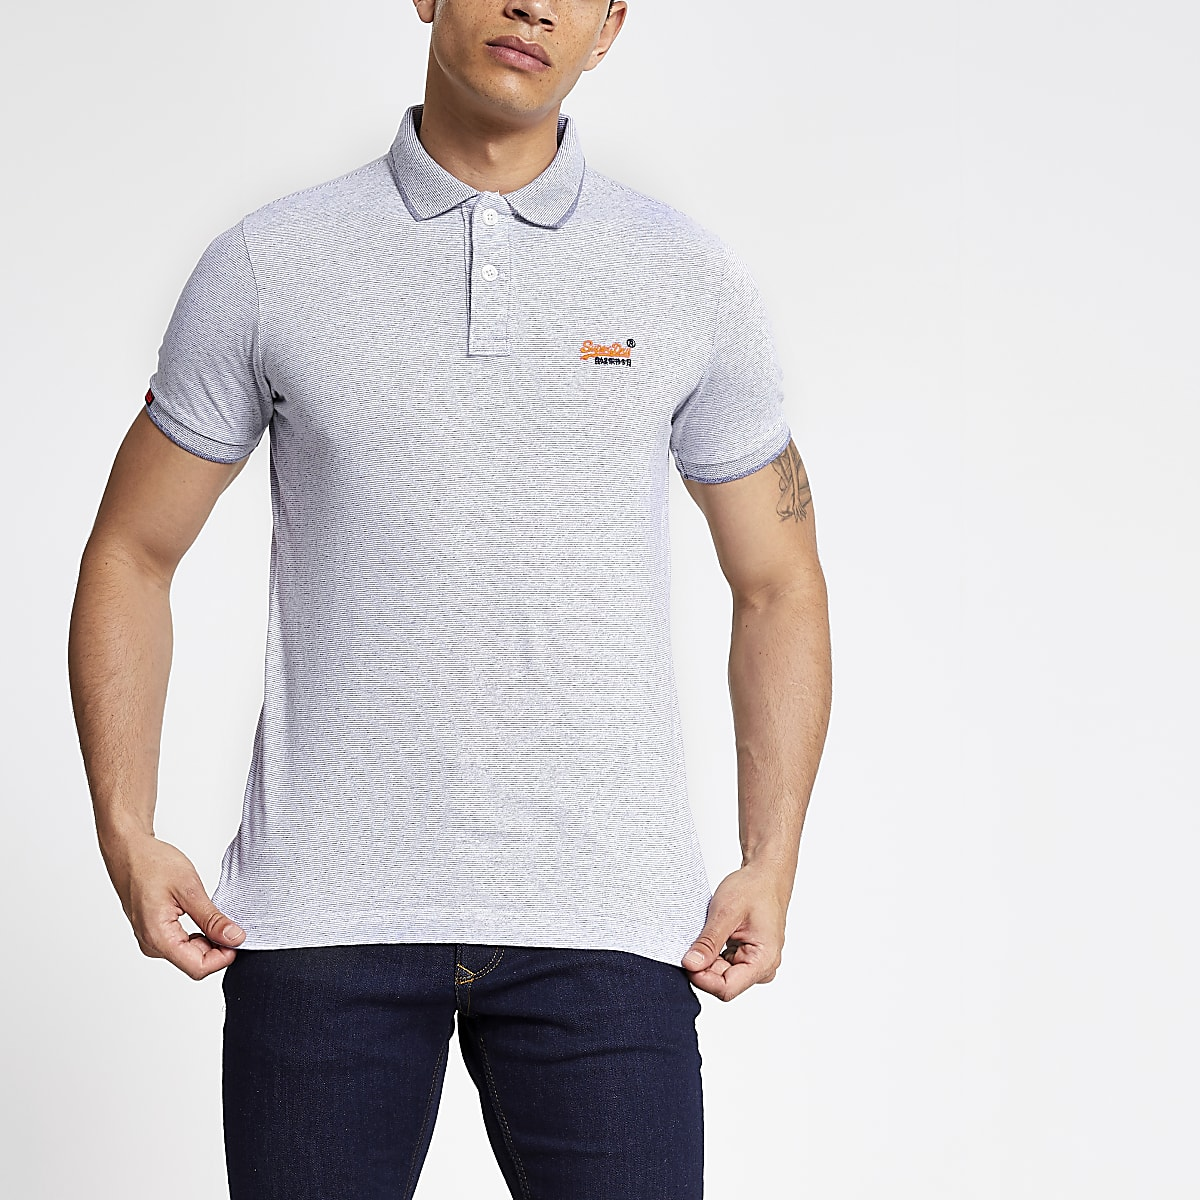 Superdry purple marl polo shirt